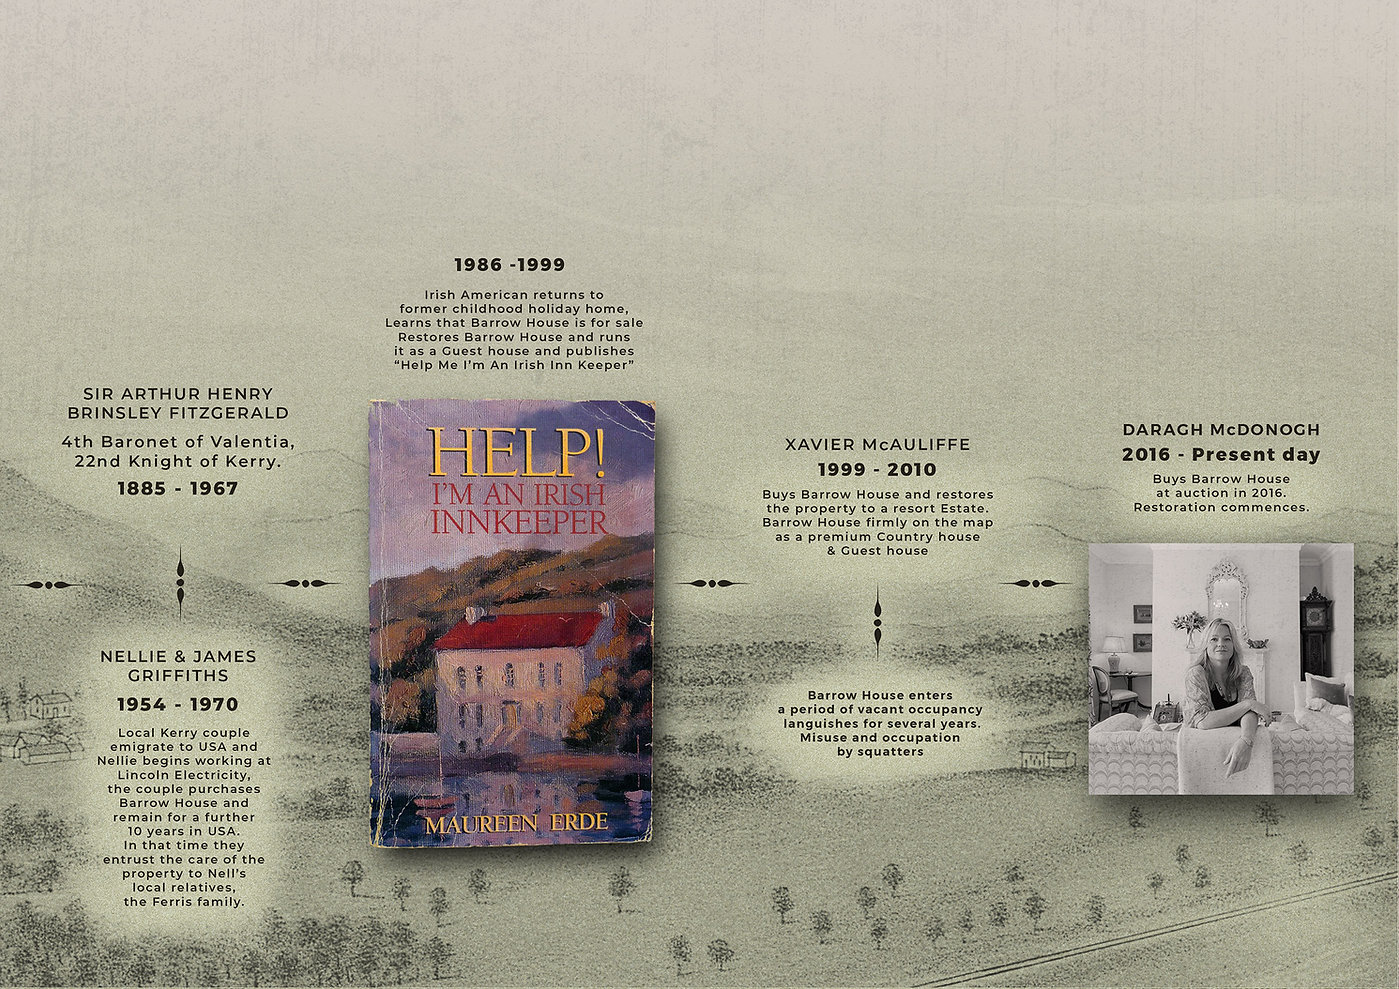 A pictoral timeline of the ownership of